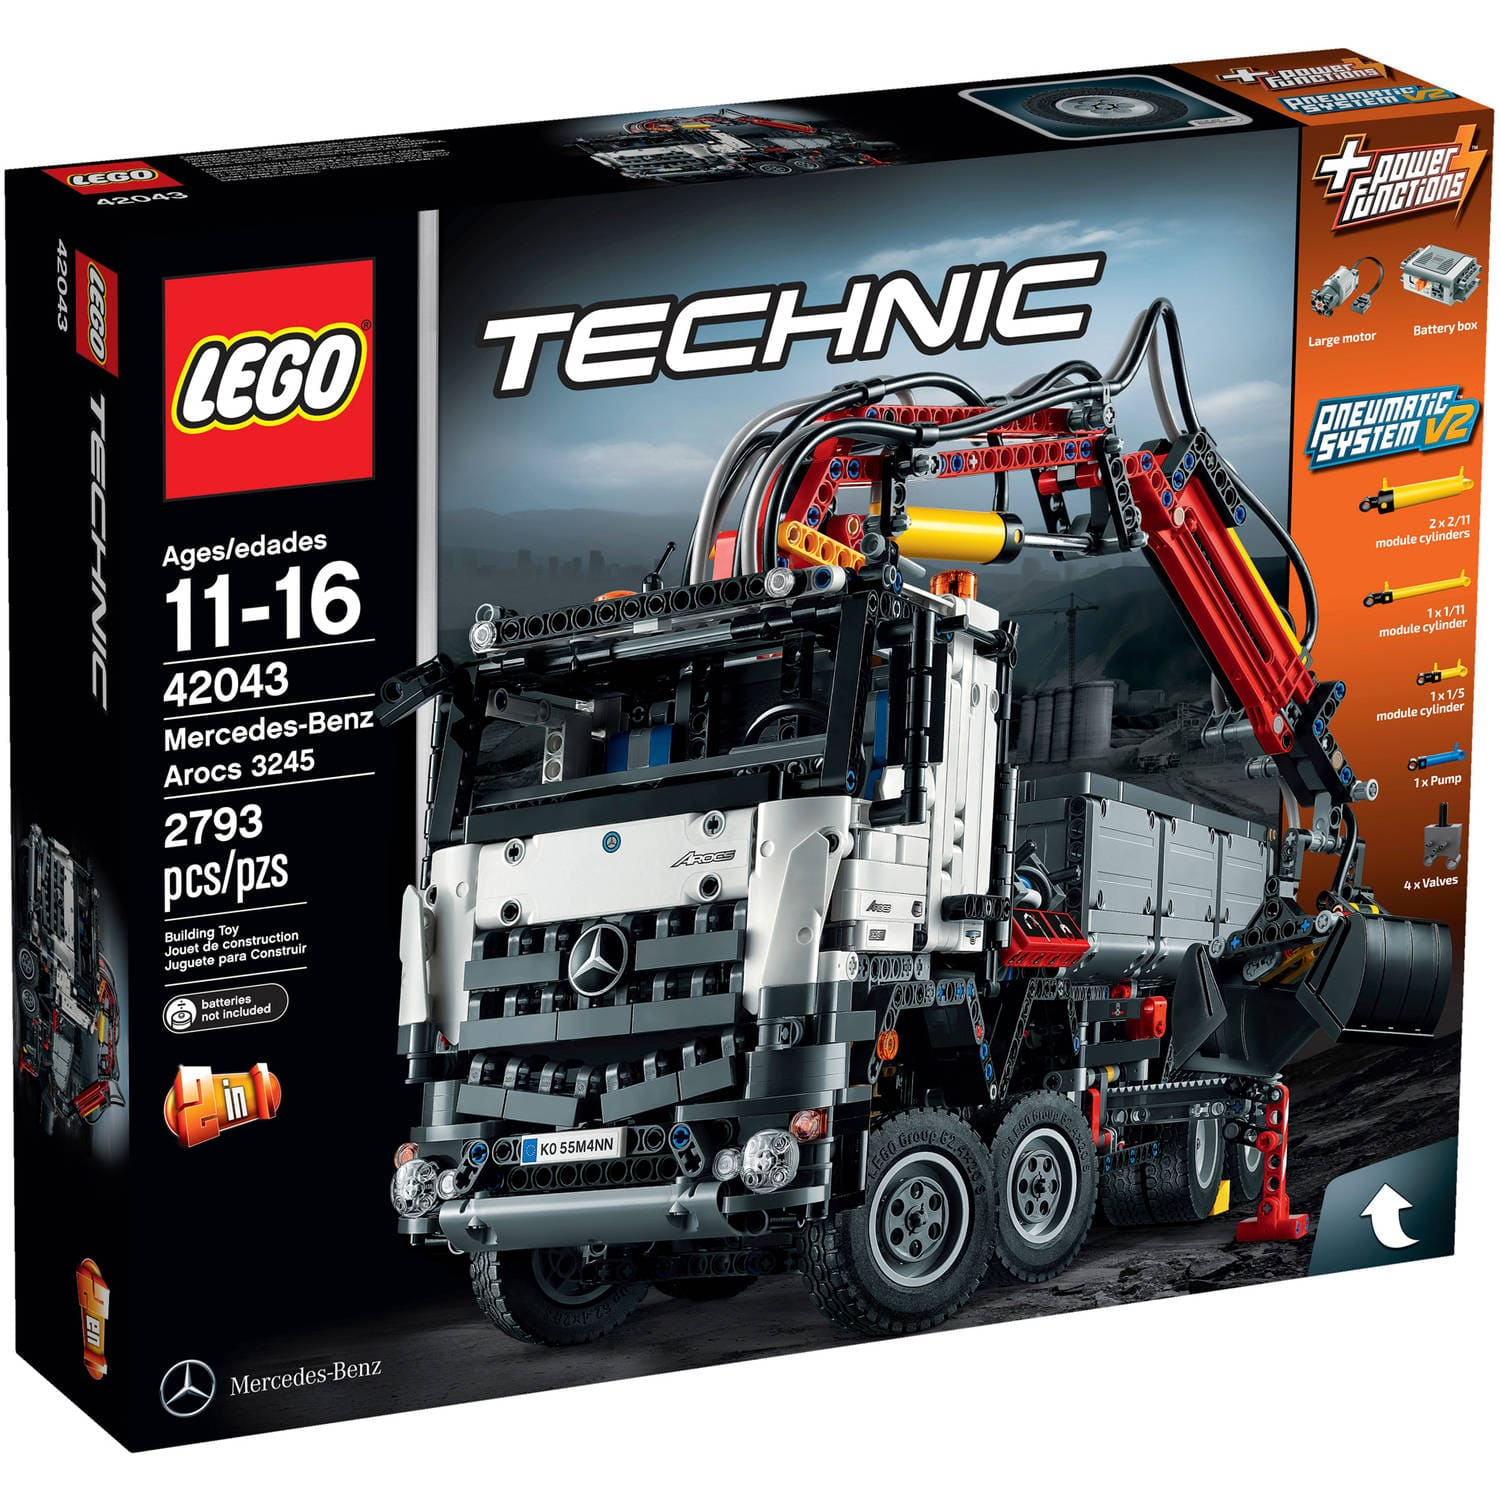 LEGO Technic Mercedes-Benz Arocs 3245 Building Kit  $178.25 + Free Shipping